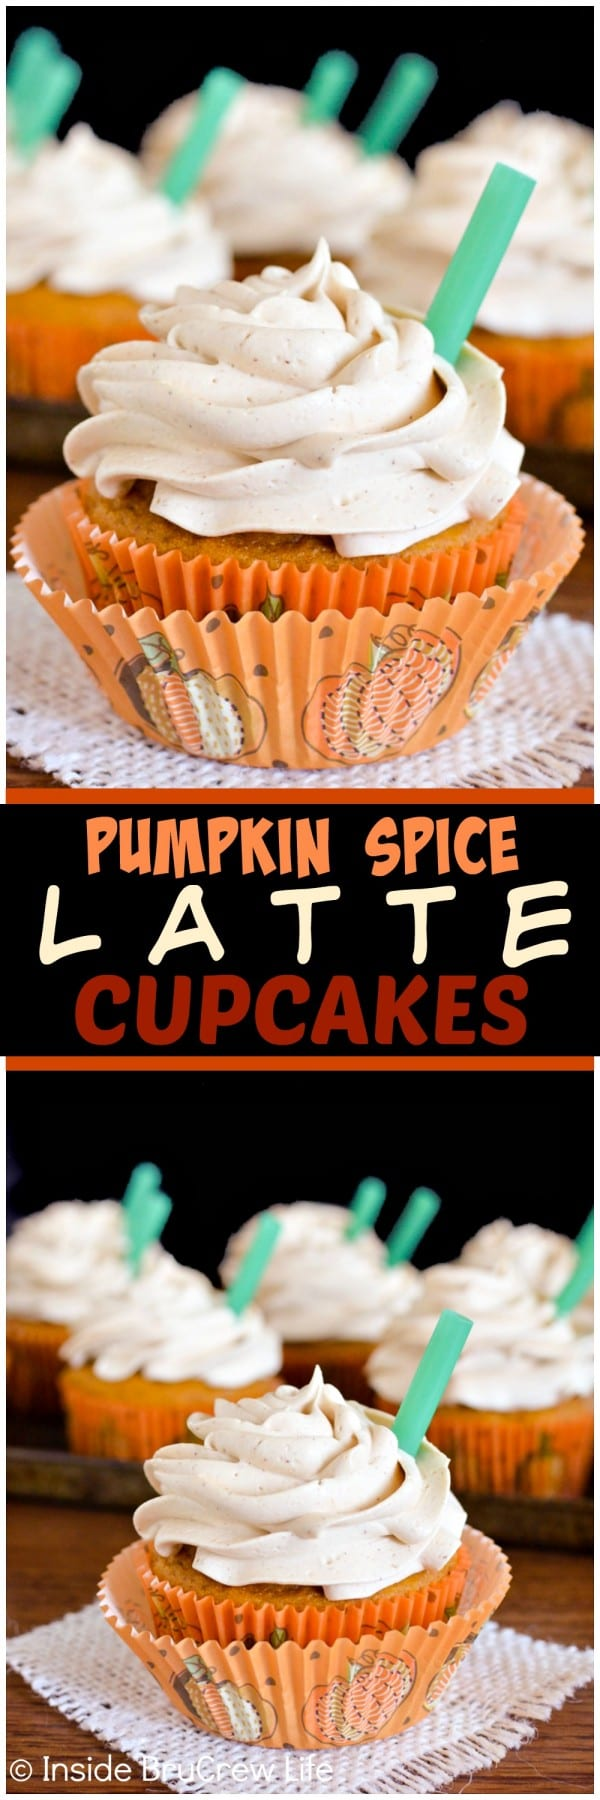 Pumpkin Spice Latte Cupcakes - a creamy white chocolate frosting makes these cupcakes taste amazing. Great copycat recipe of the popular fall drink!